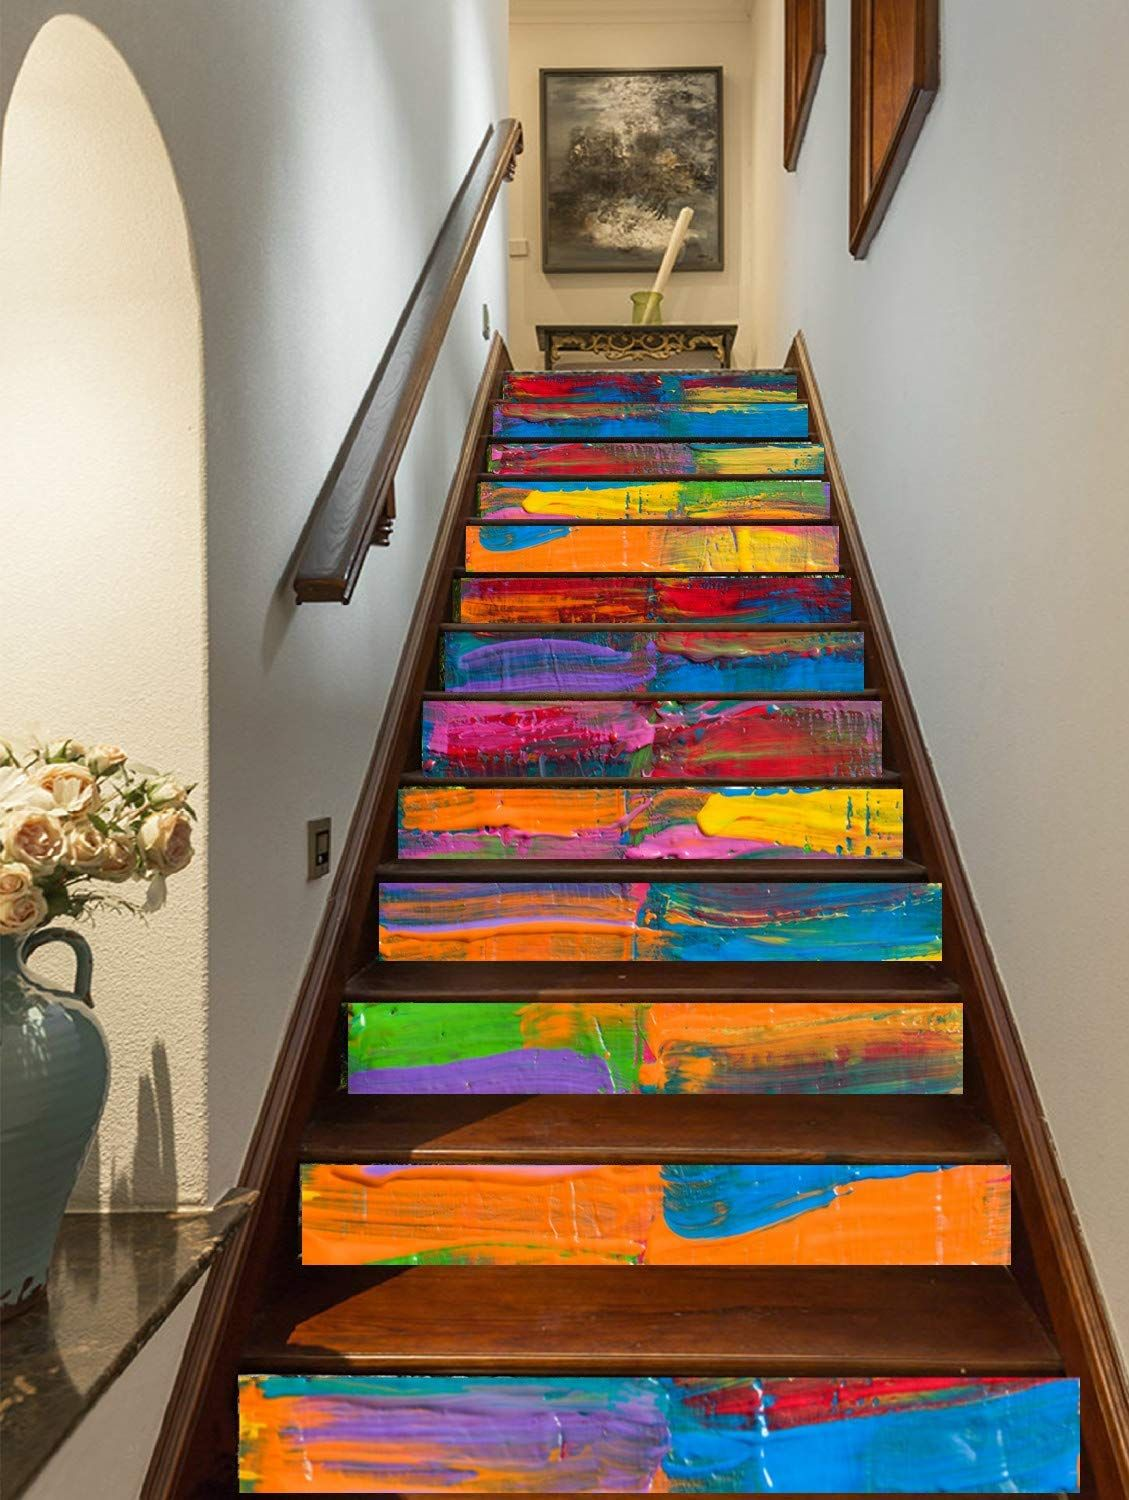 Need Some Stair Design Inspo? Decorate Your Stairs With These Trompe-L'Oeil Stickers